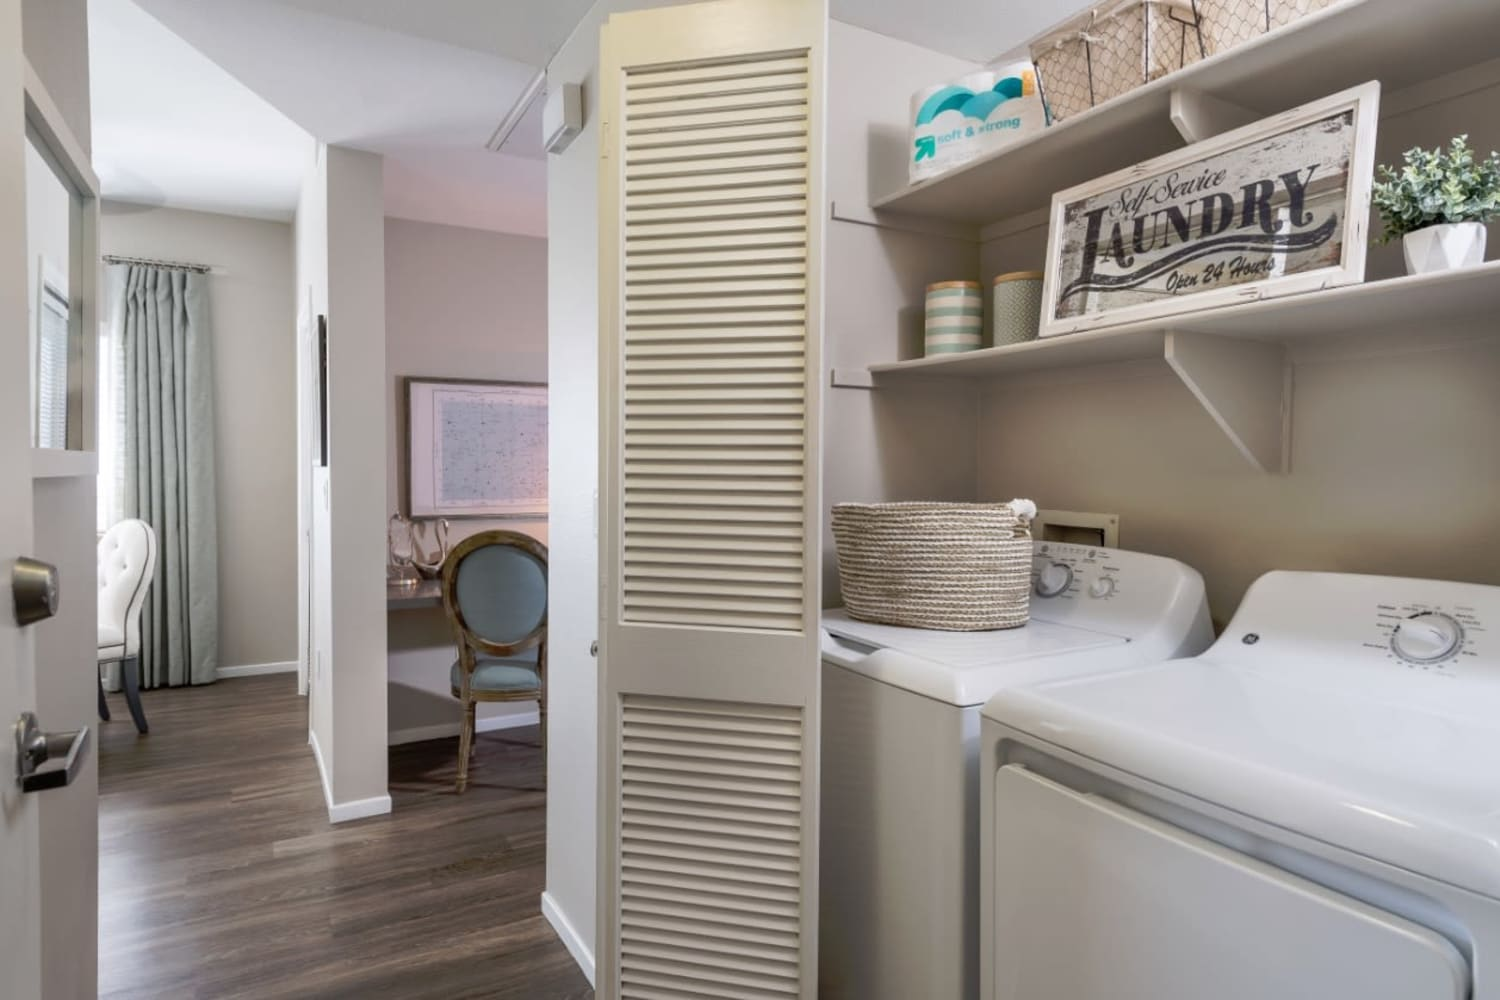 Madrid Apartments in Mission Viejo, California, offer in unit washer and dryers